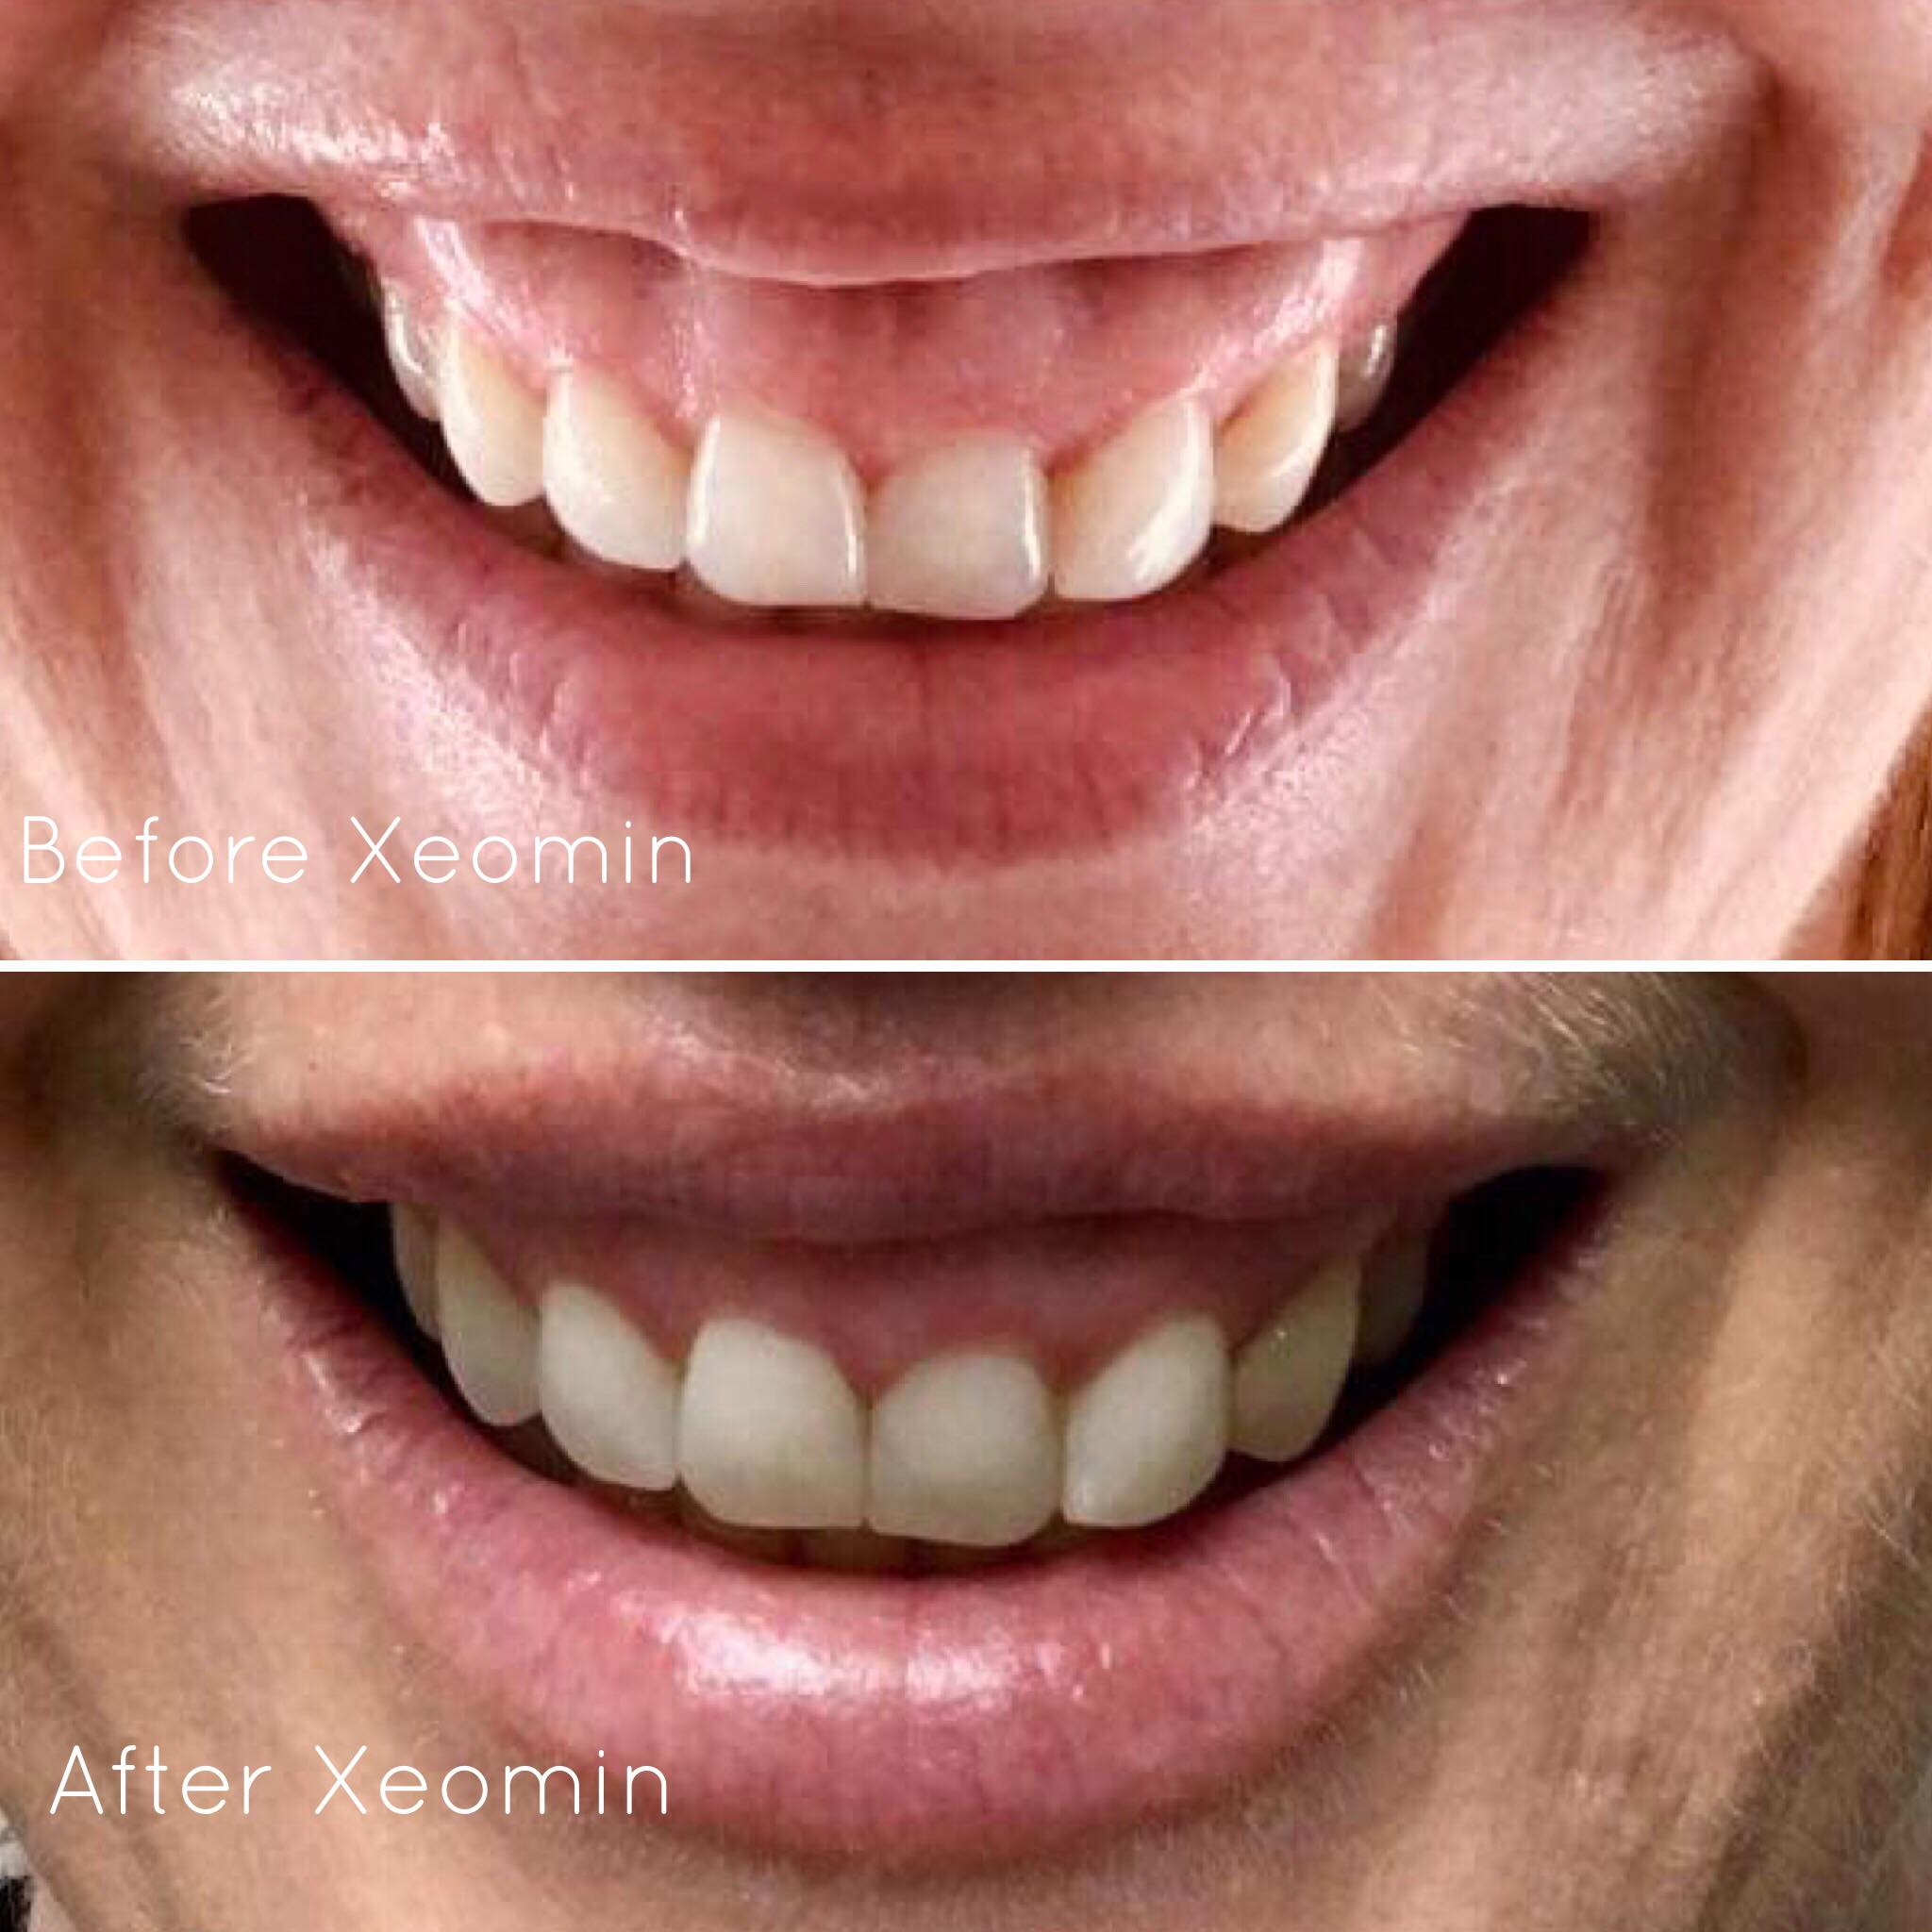 Xeomin® used to improve a gummy smile - *Please note results will vary between individual patients.